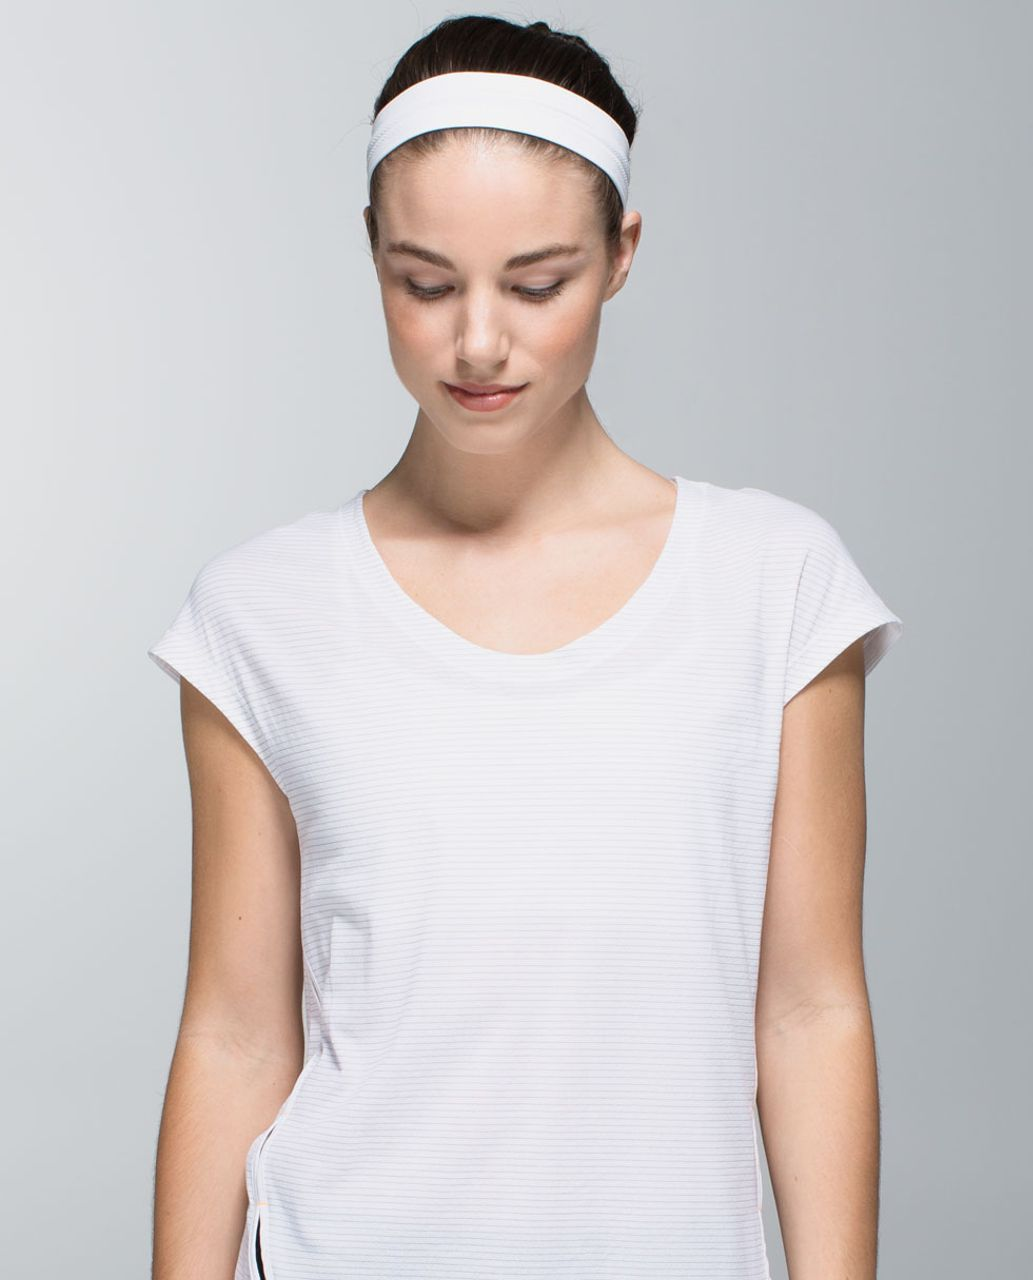 Lululemon Swiftly Headband - Heathered White - lulu fanatics 973c3130266